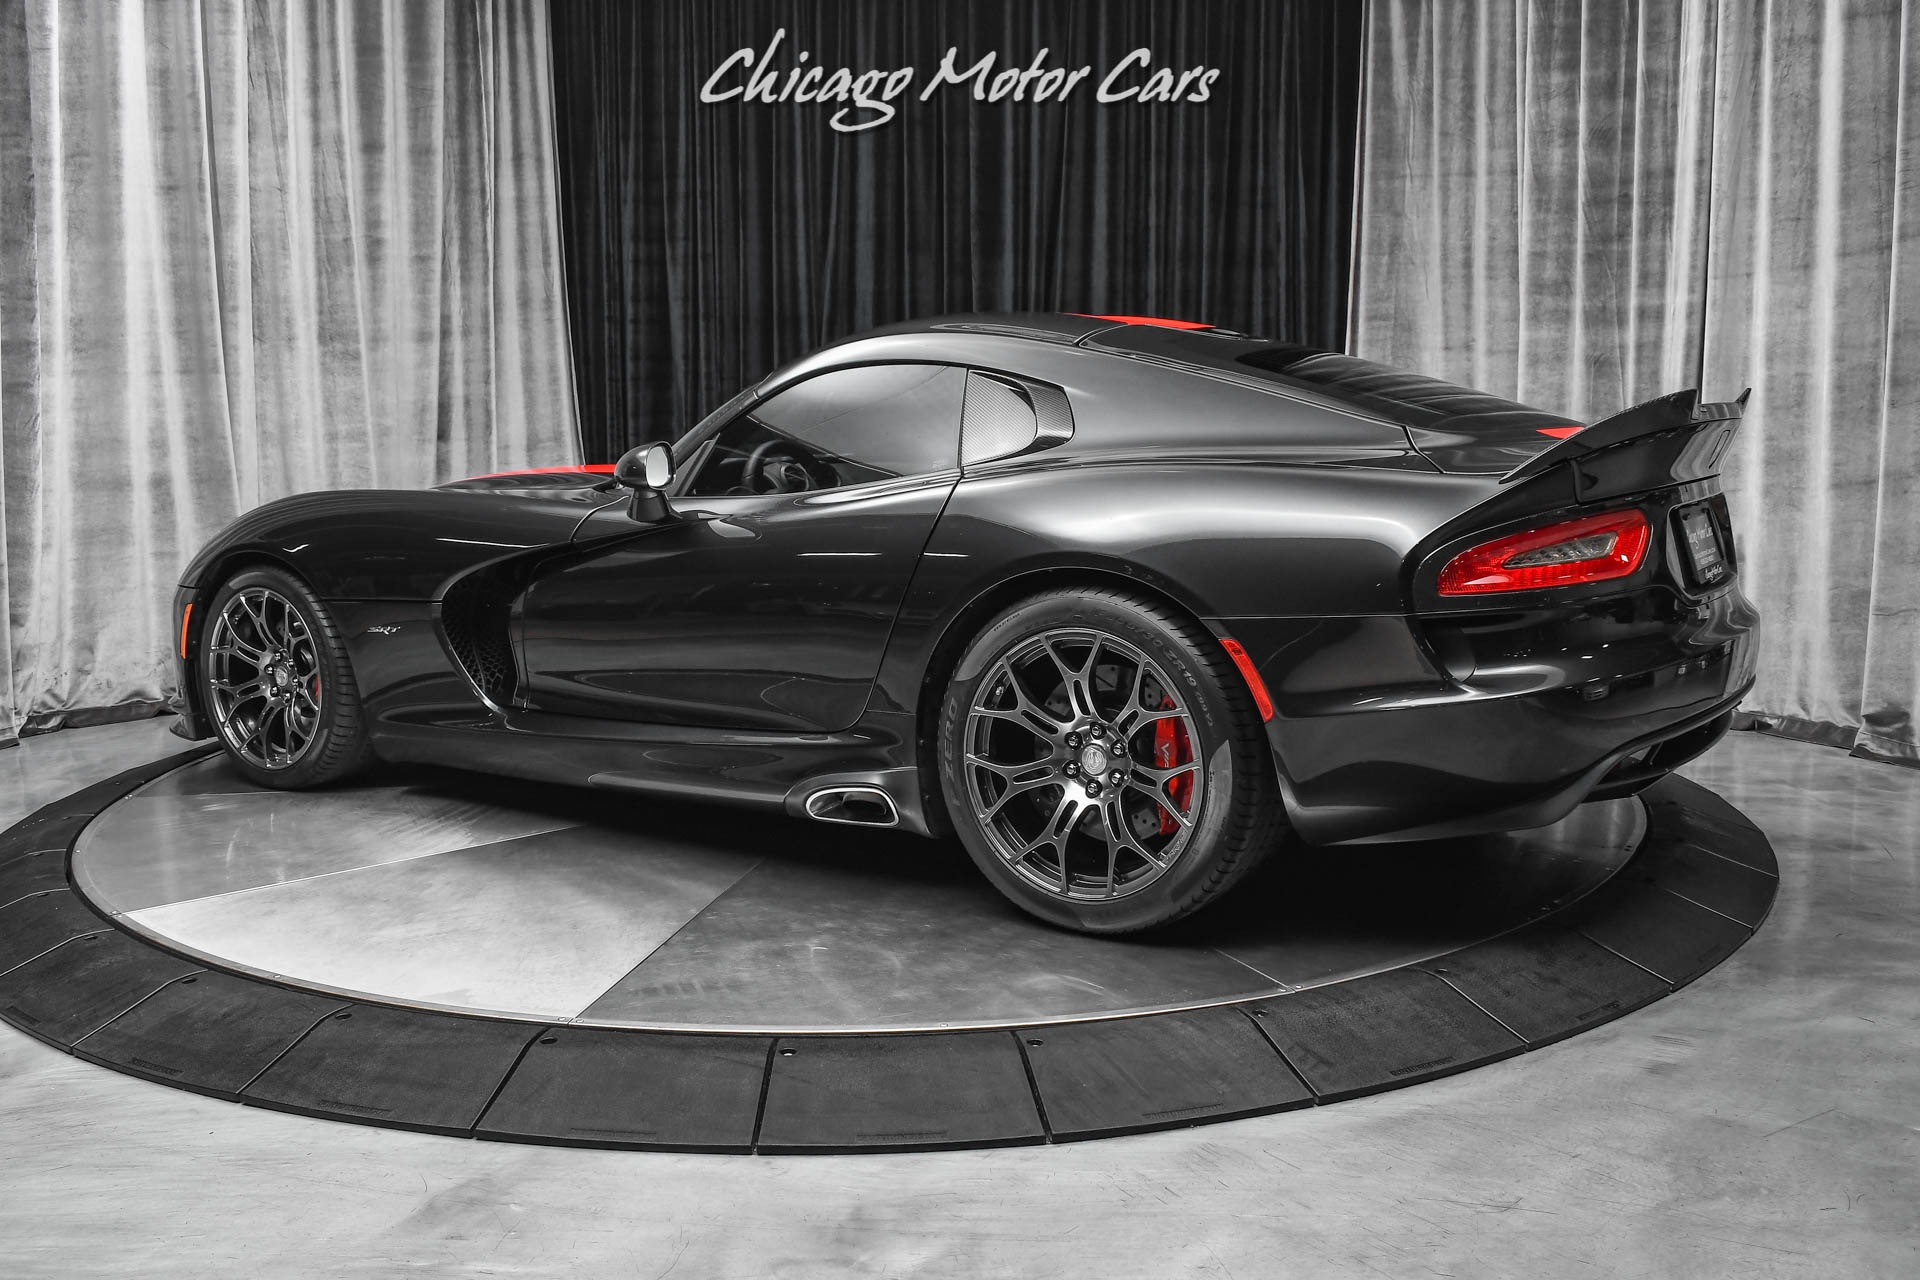 Used-2014-Dodge-SRT-Viper-Coupe-Only-2100-Miles-Gunmetal-Pearl-Collector-Quality-LOADED